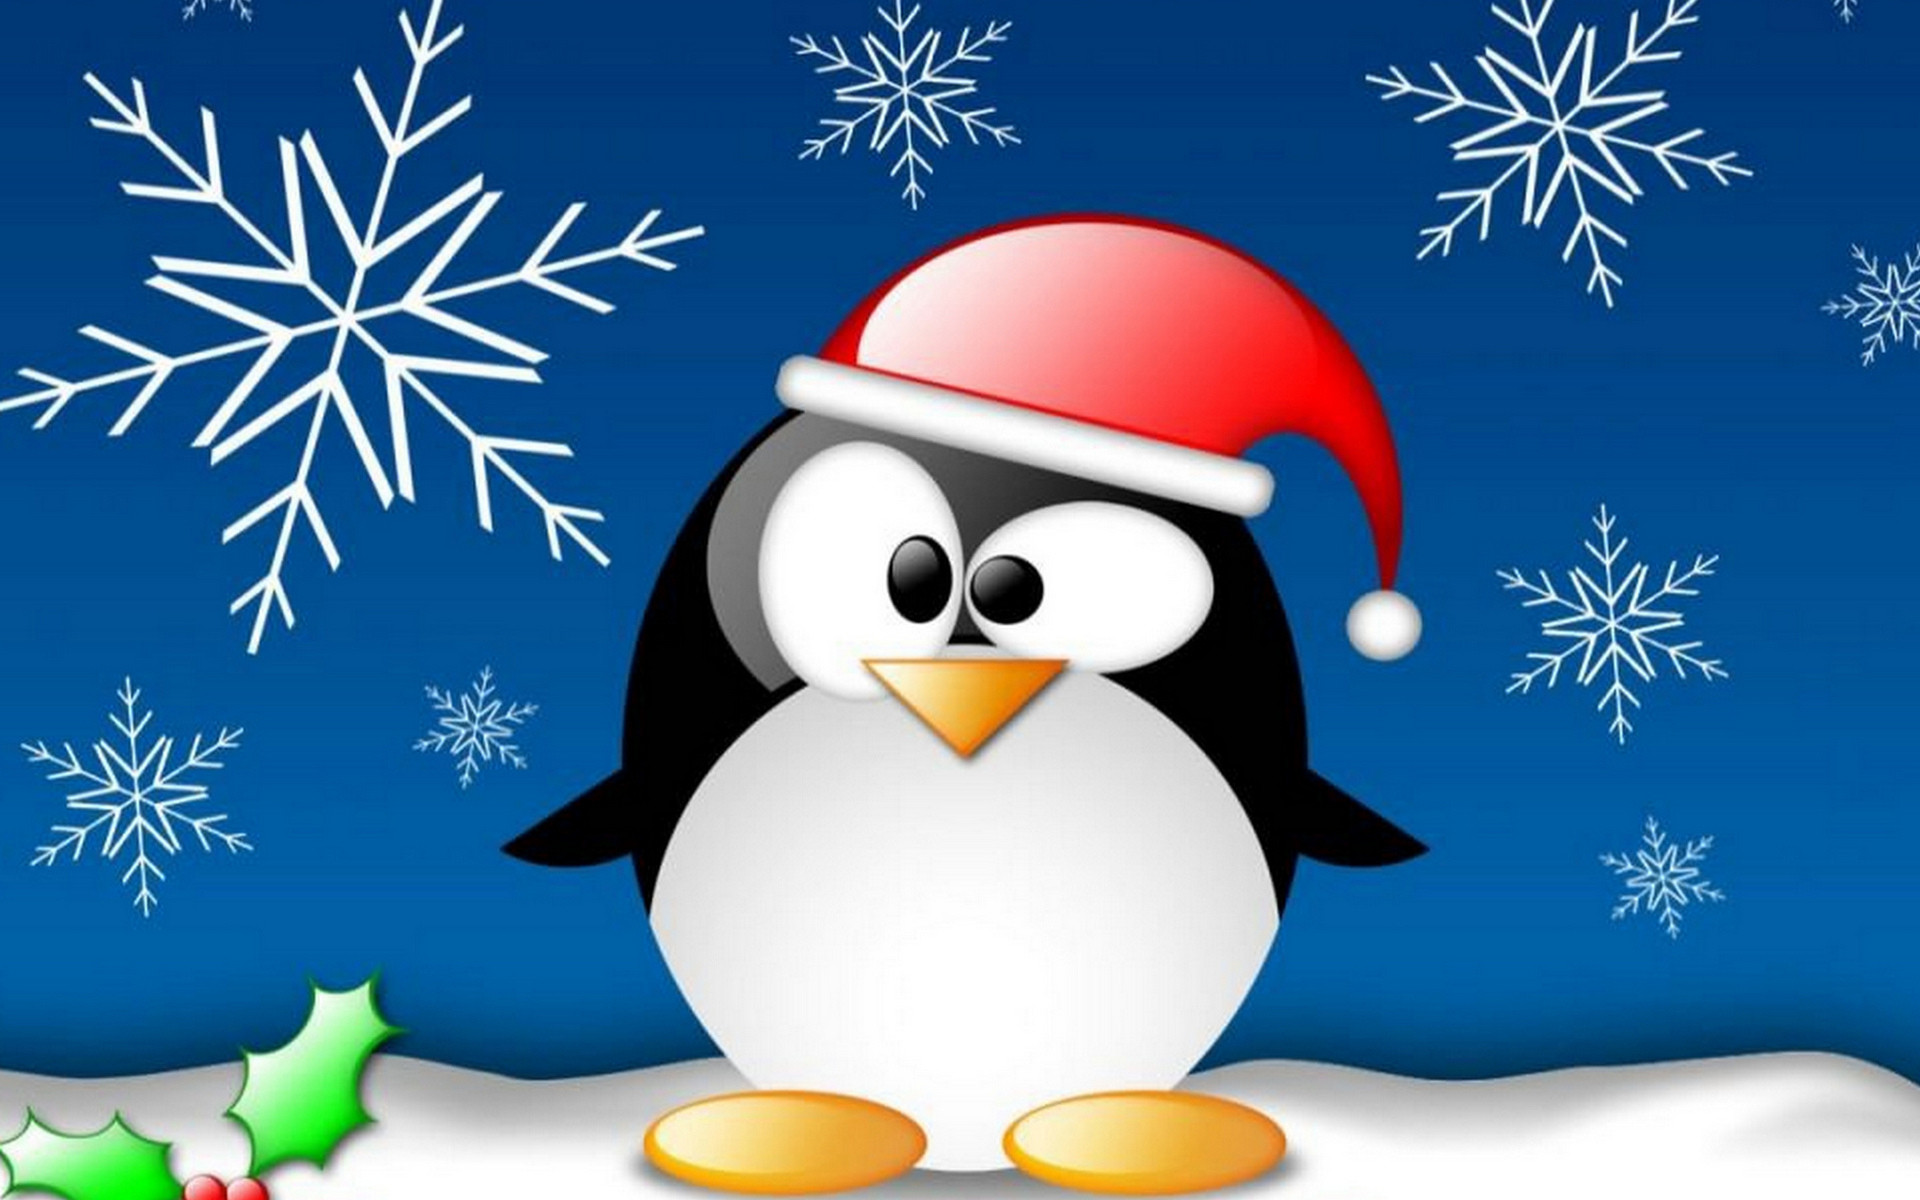 penguin on Christmas wallpapers and images – wallpapers, pictures .